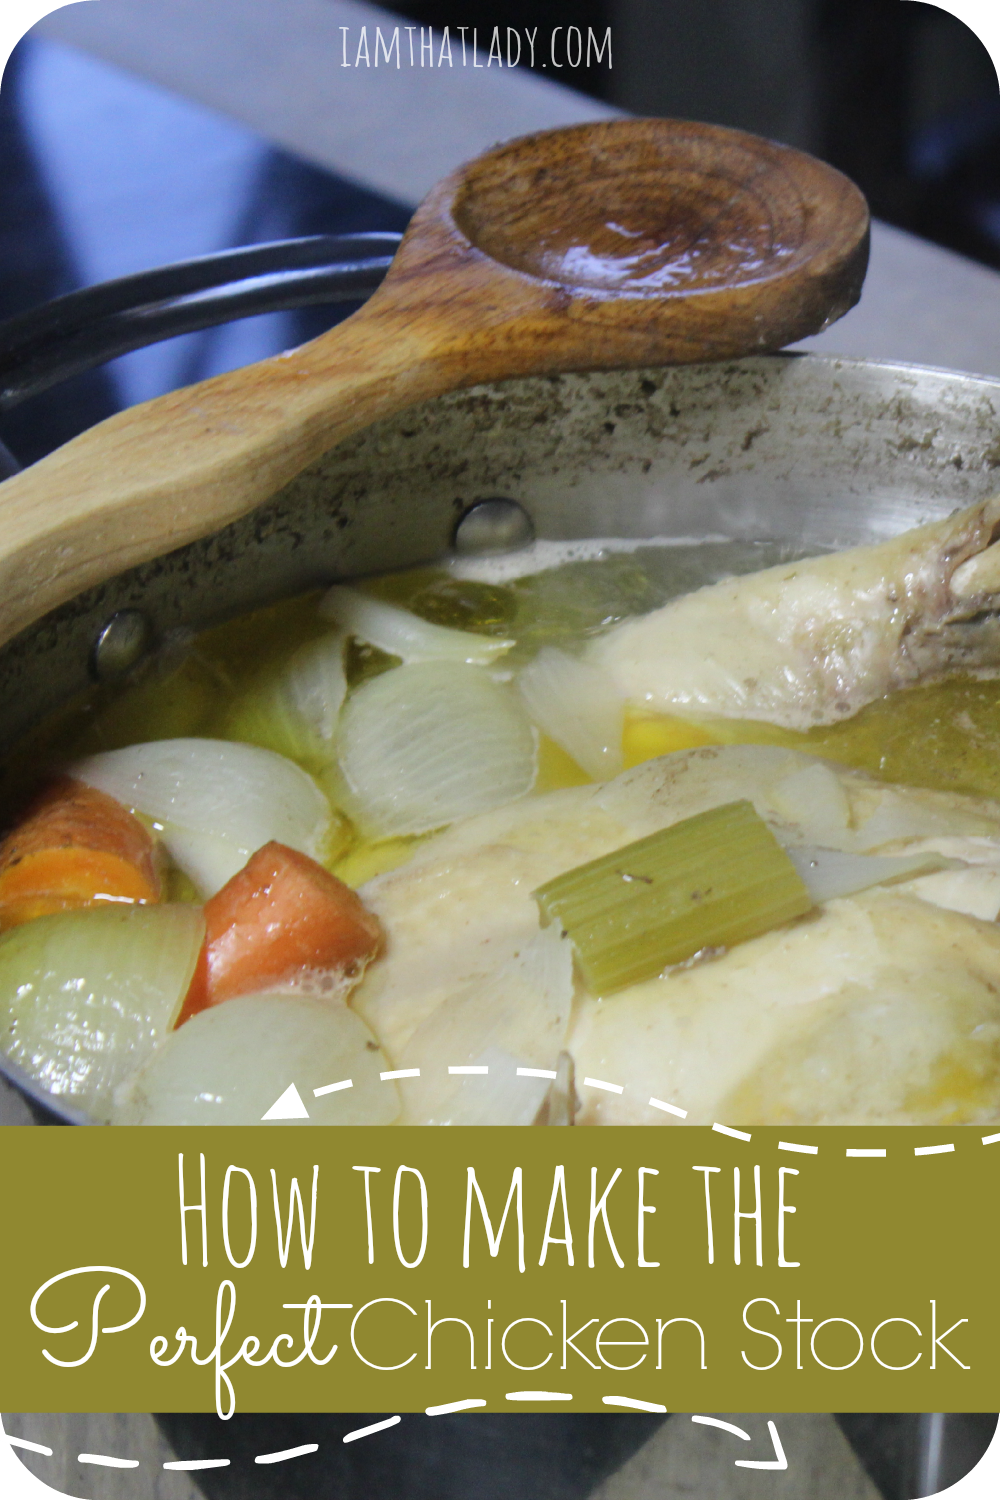 Are you looking for an easy and inexpensive chicken stock recipe?